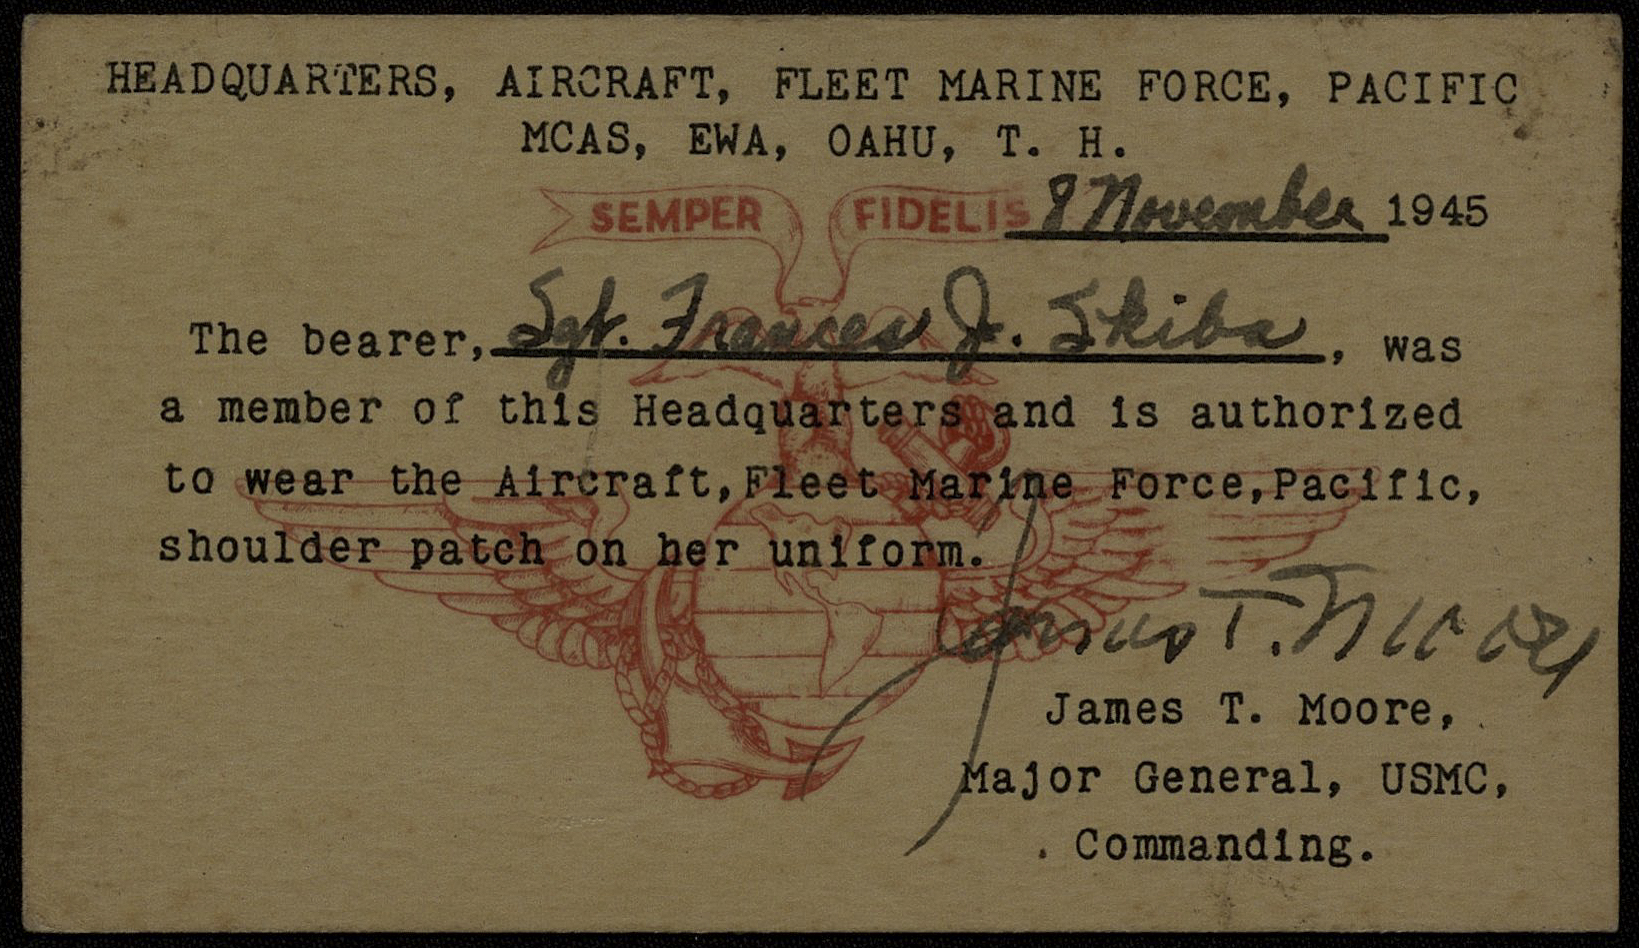 Item from the service of Sergeant Frances Hoffmann (née Skiba), who was a member of the Marine Corps Women's Reserve (MCWR) in the Pacific Theater of Operations